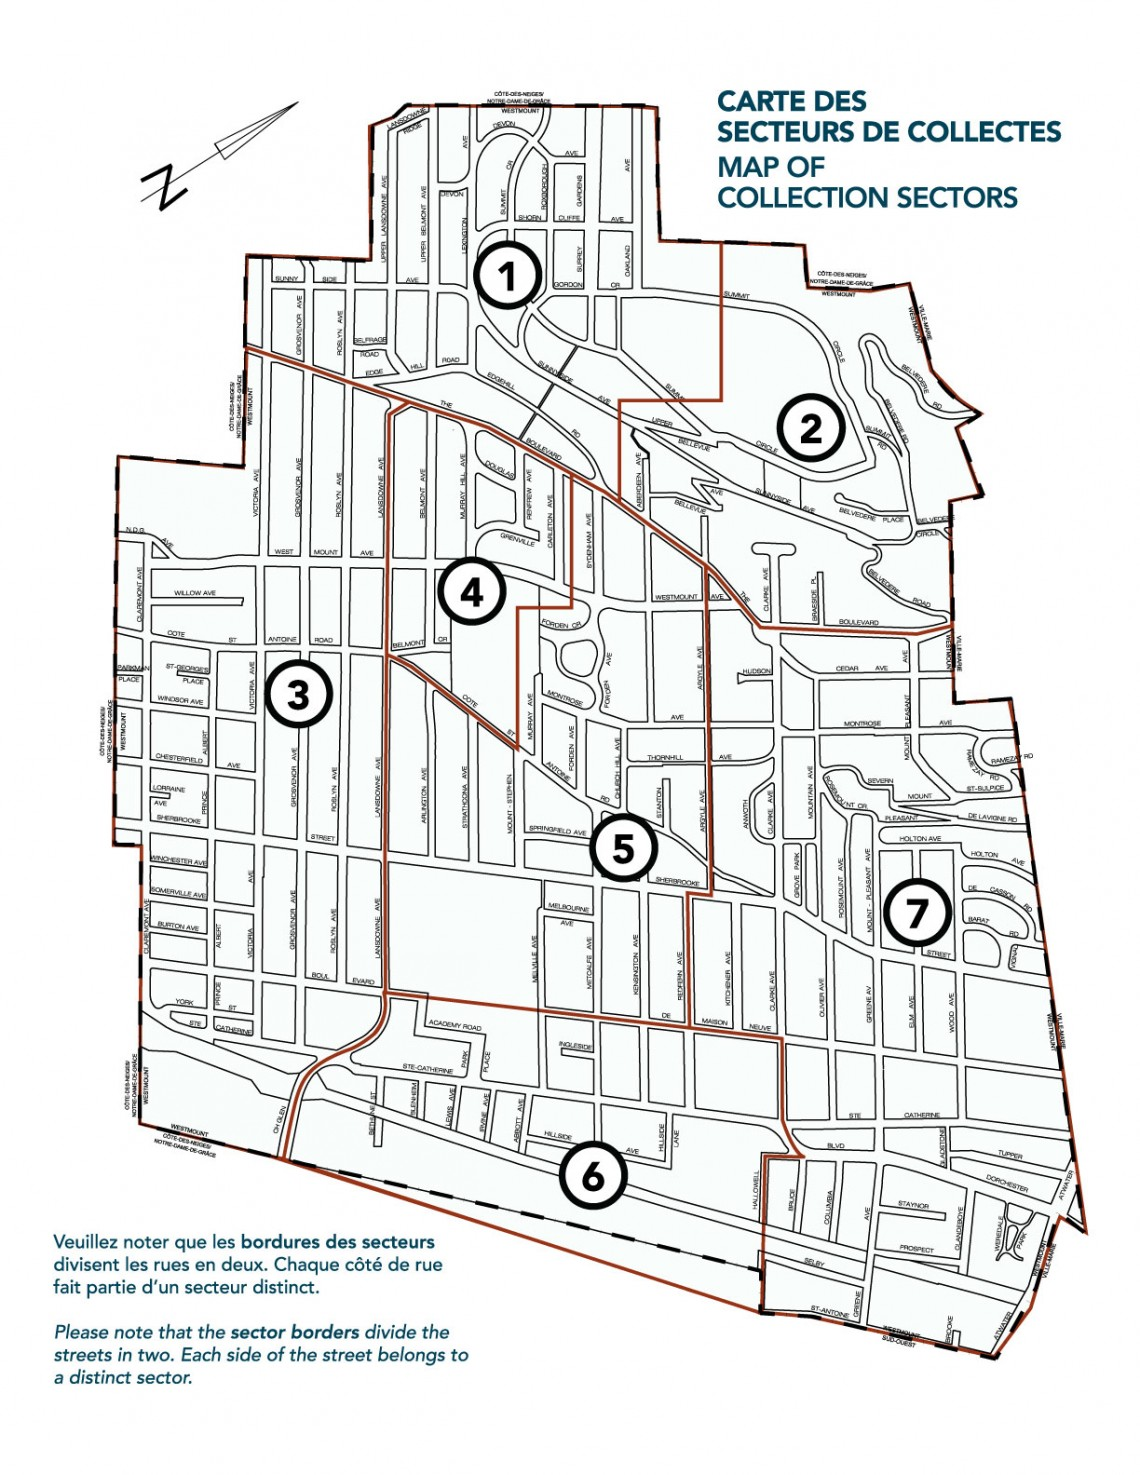 Map of Collection Sectors